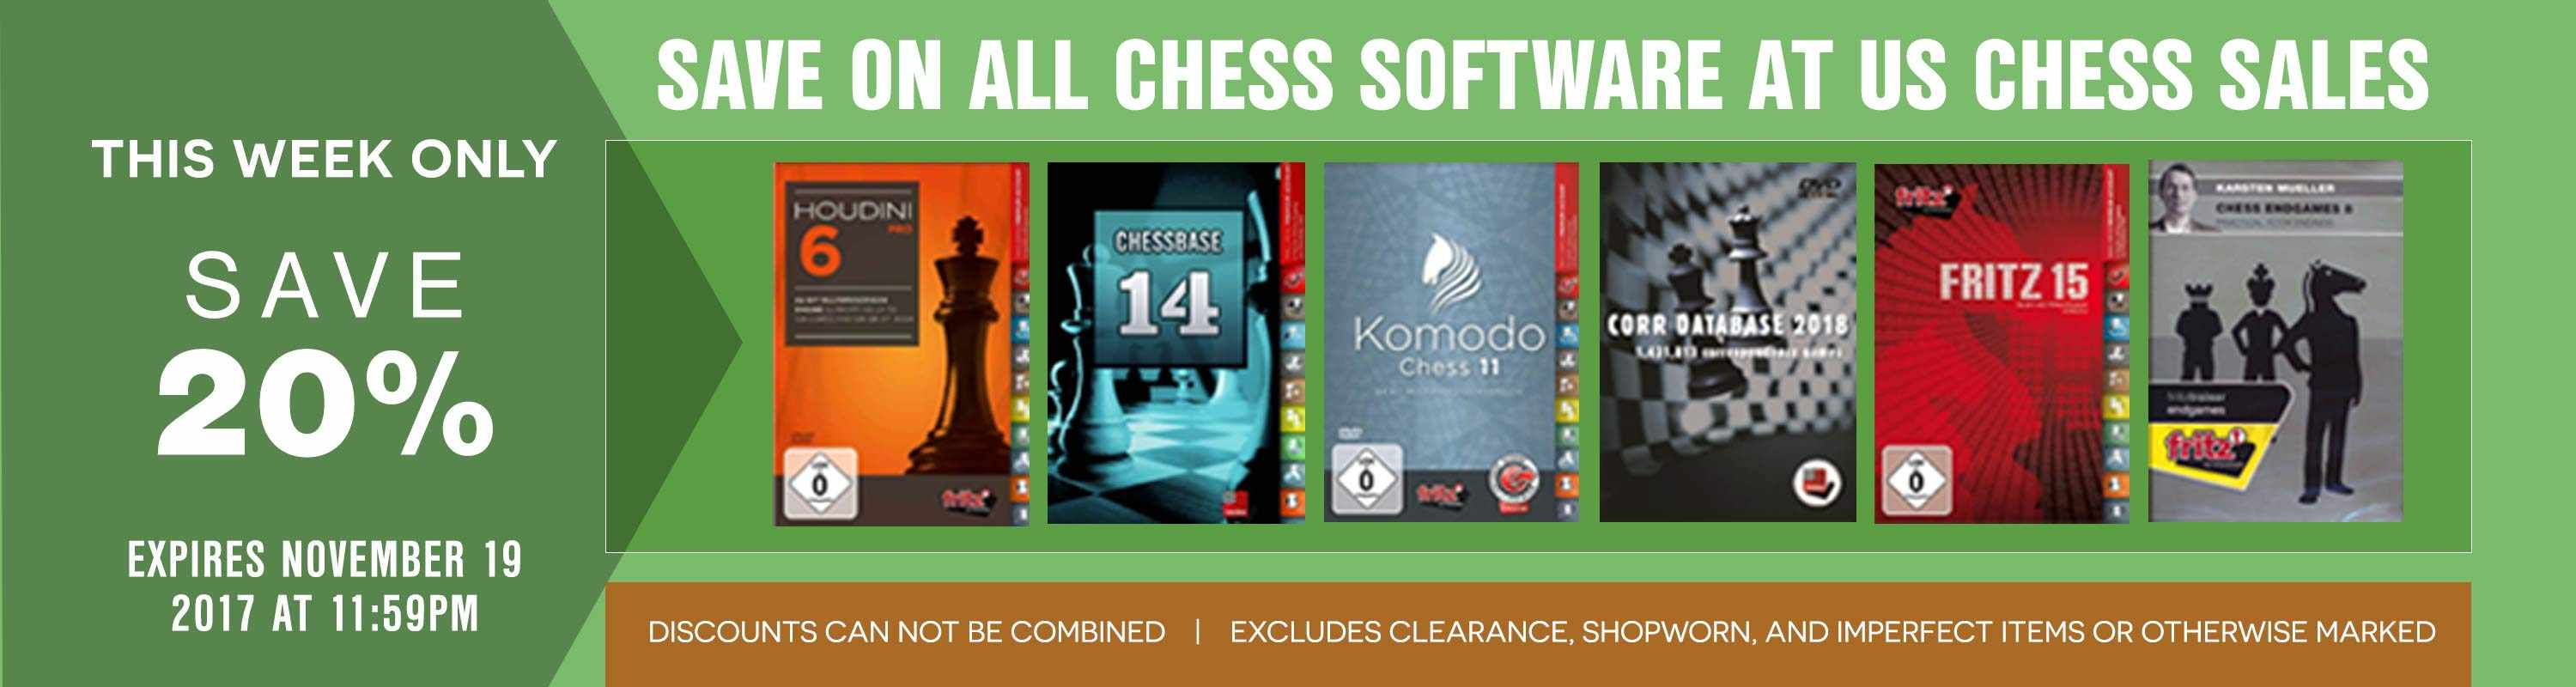 This Week Only: Save 20% on All Chess Software at US Chess Sales!